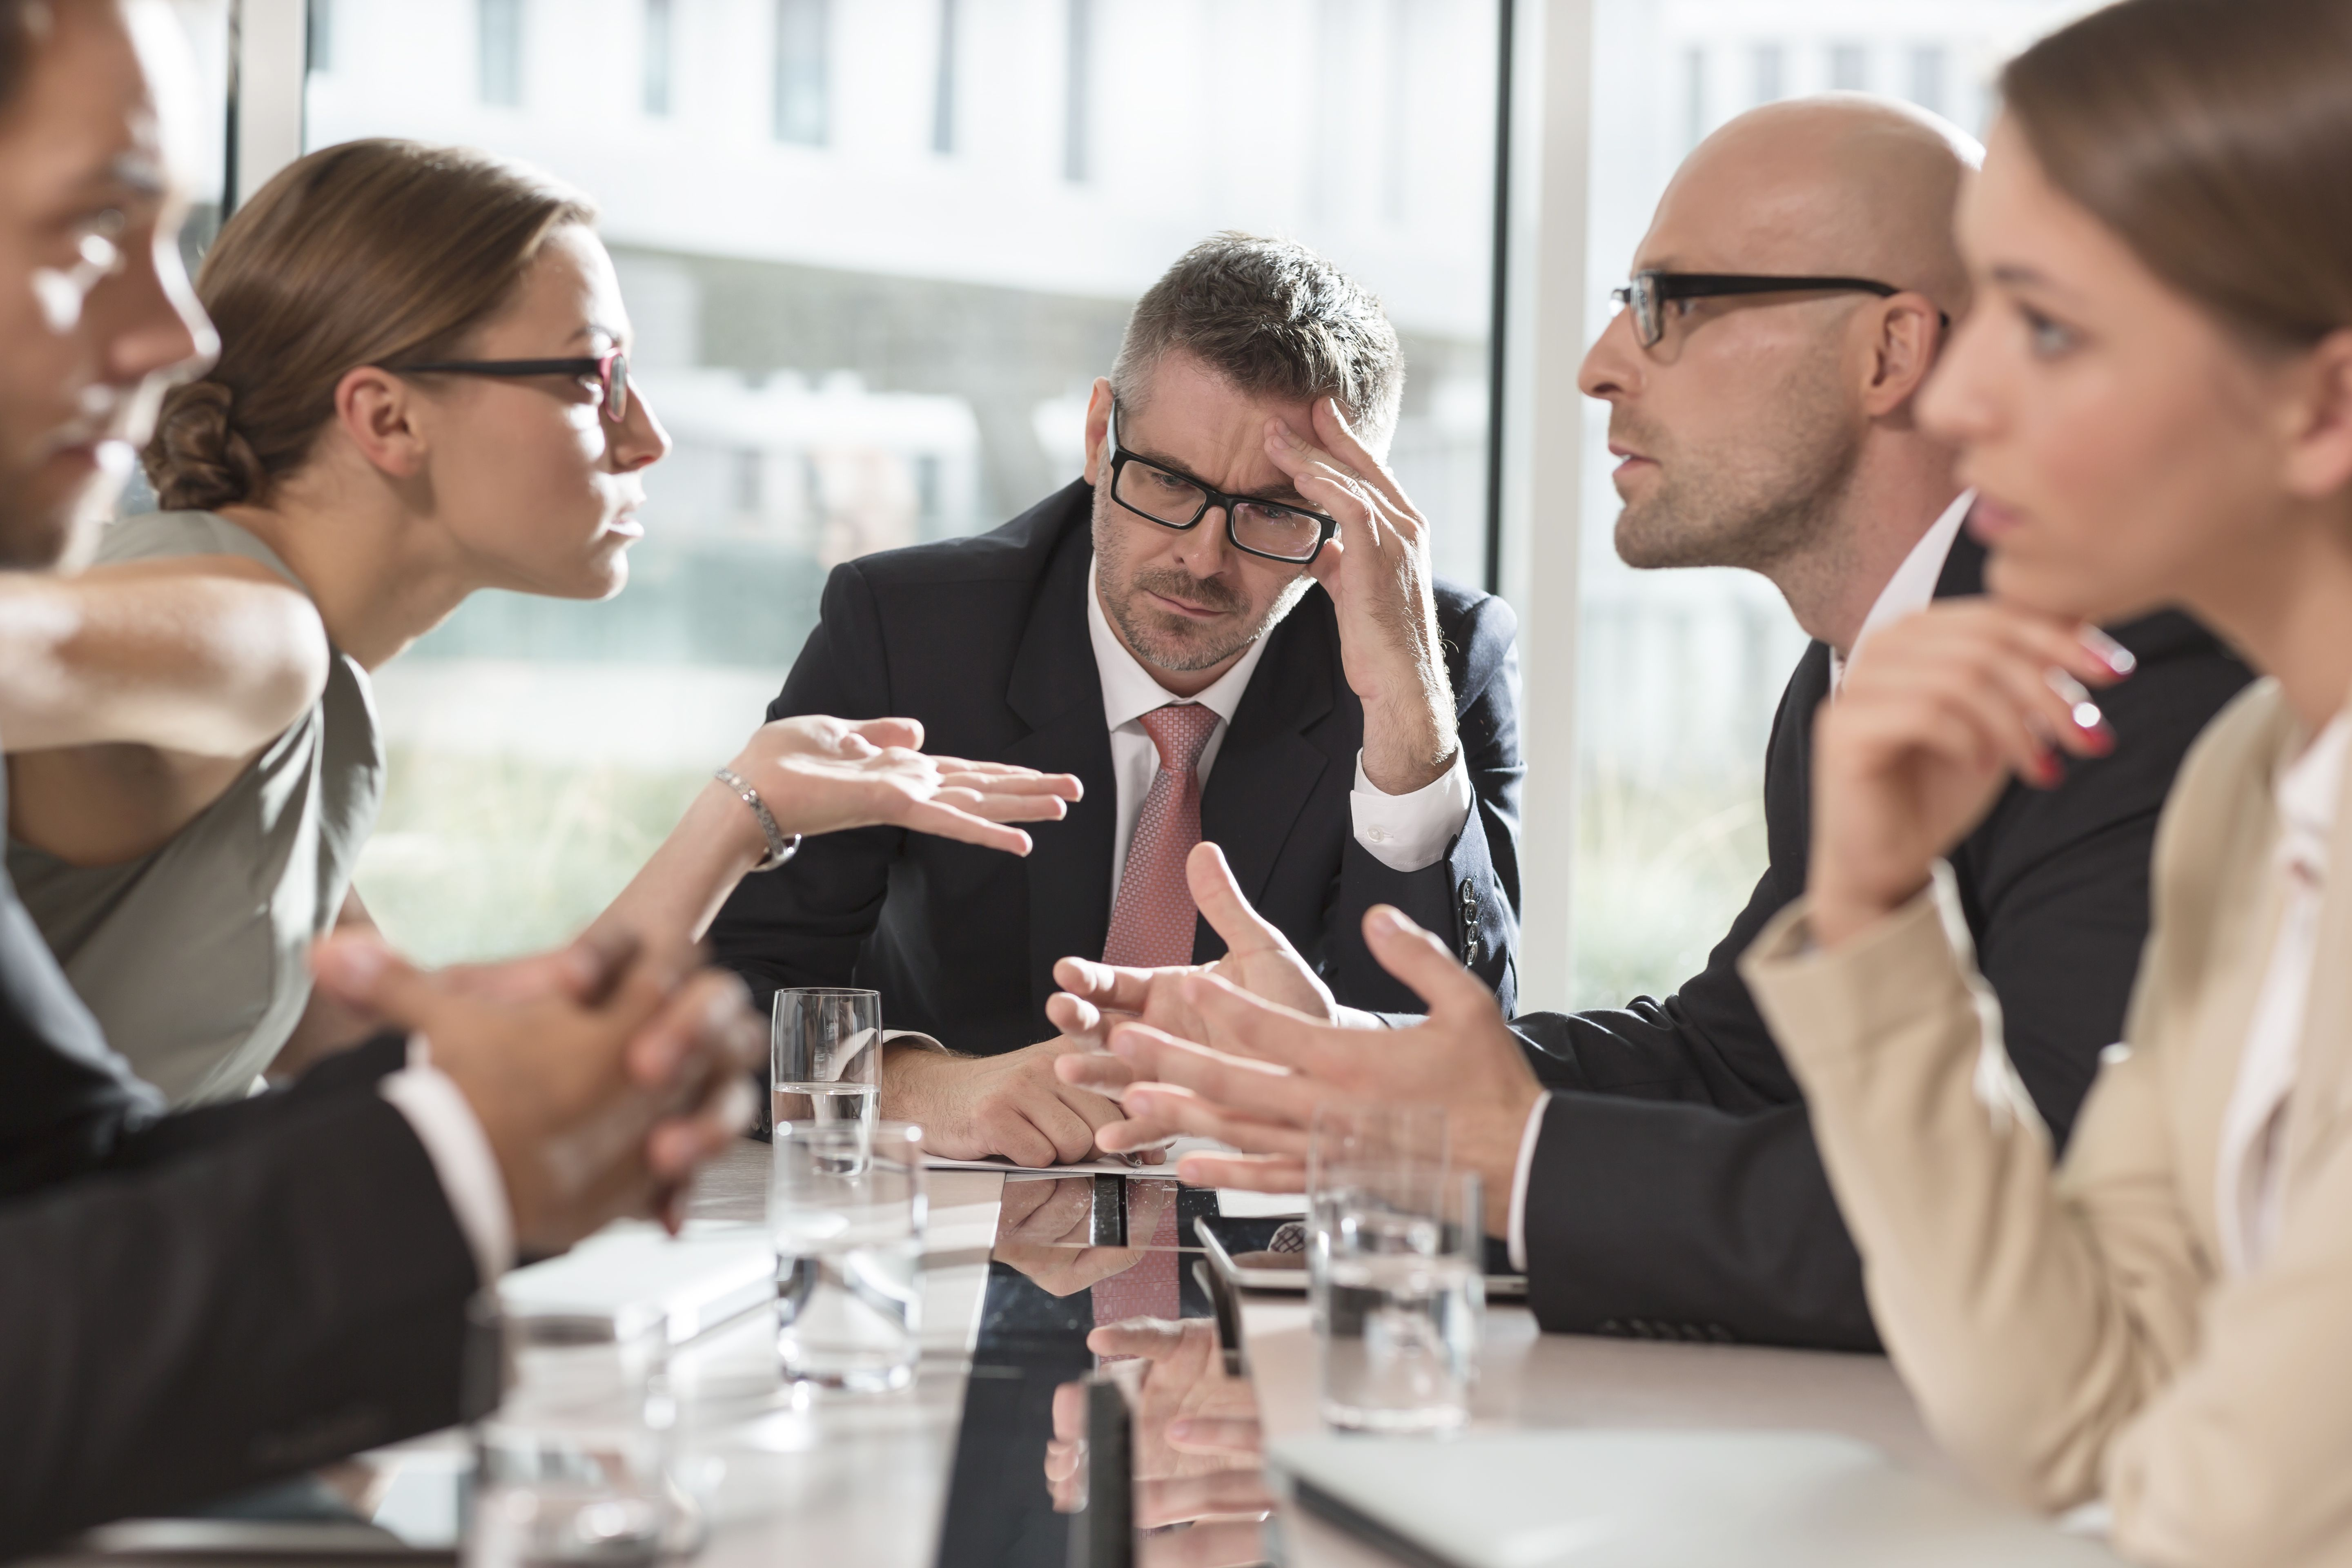 Business partners in disagreement at conference table.